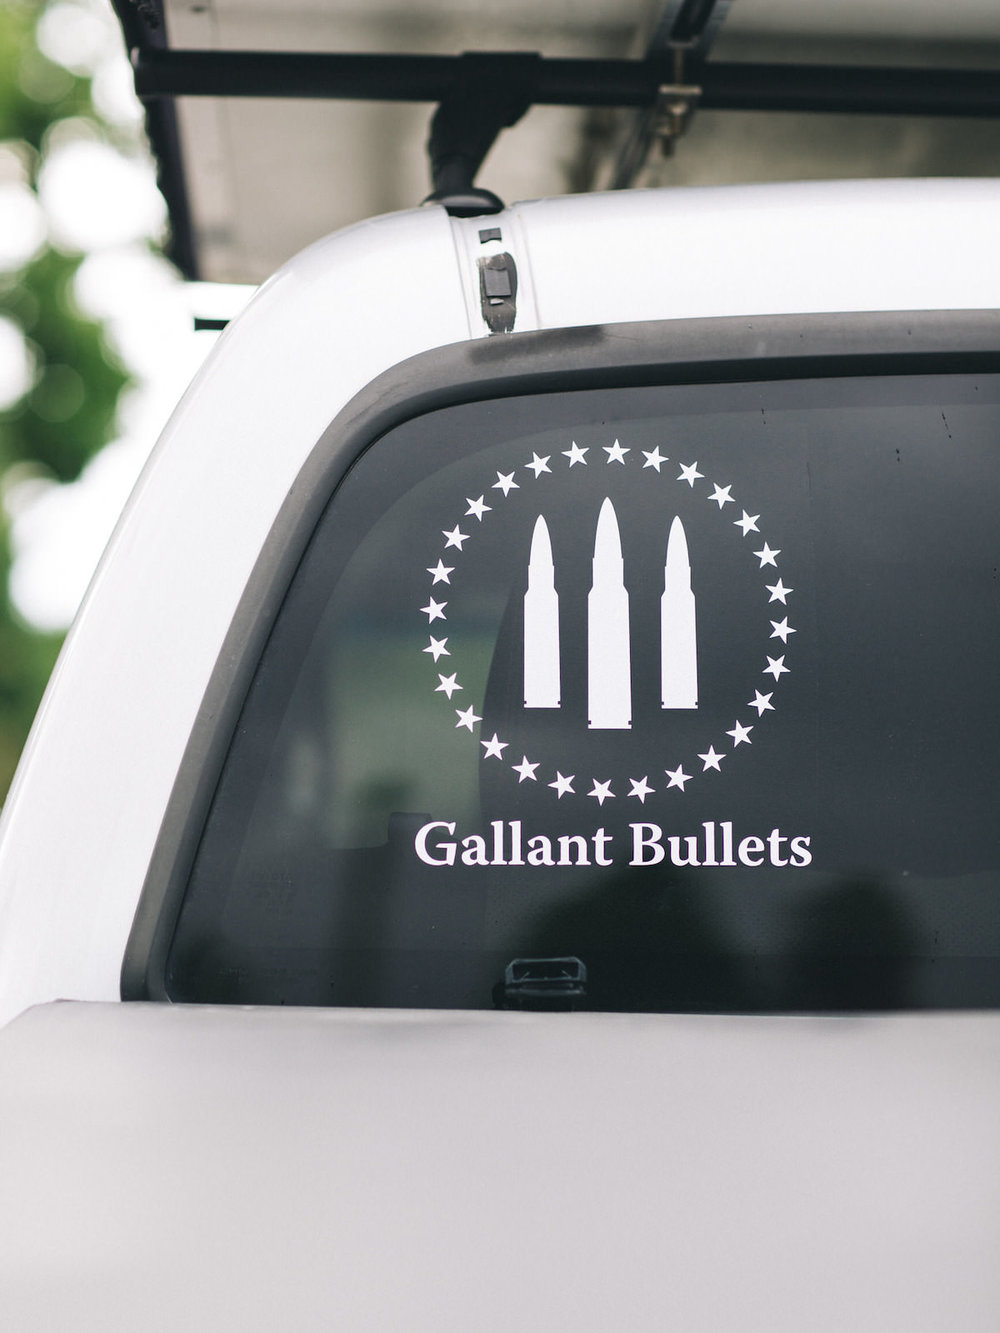 GALLANT BULLETS FIRST ORIGINAL LOGO and NAME WHITE DECAL